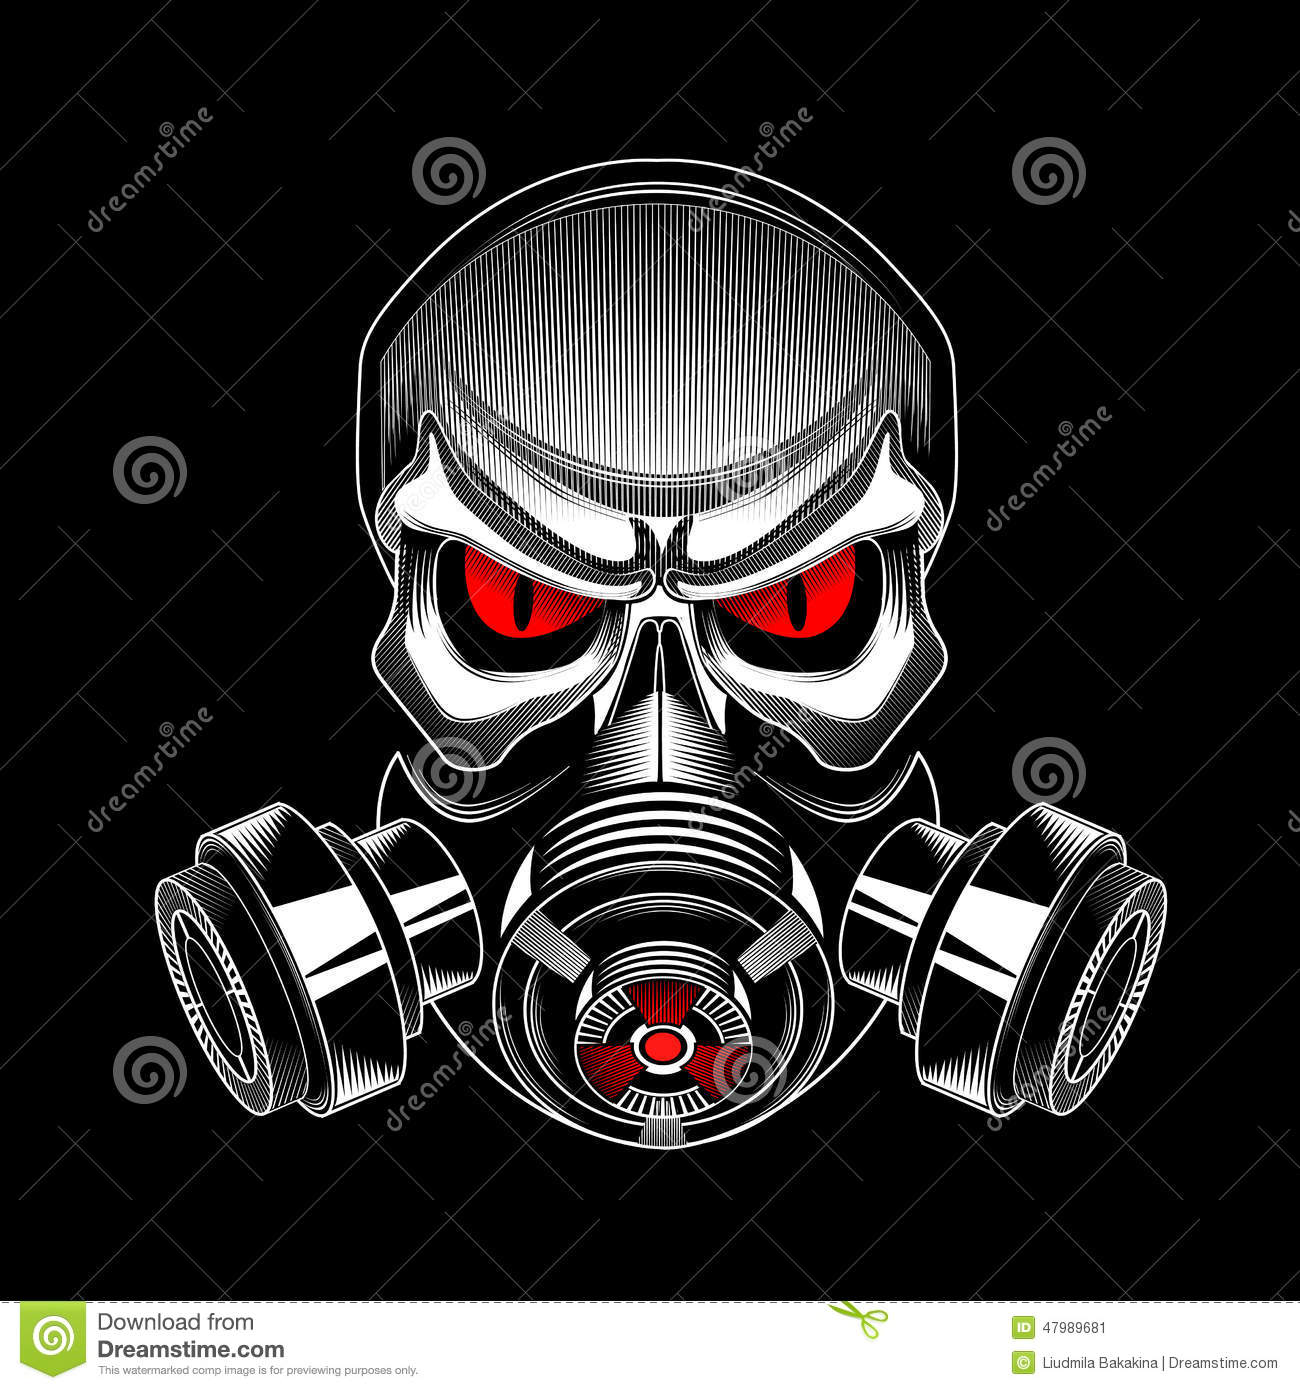 Skull Wearing A Gas Mask Stock Vector - Image: 47989681